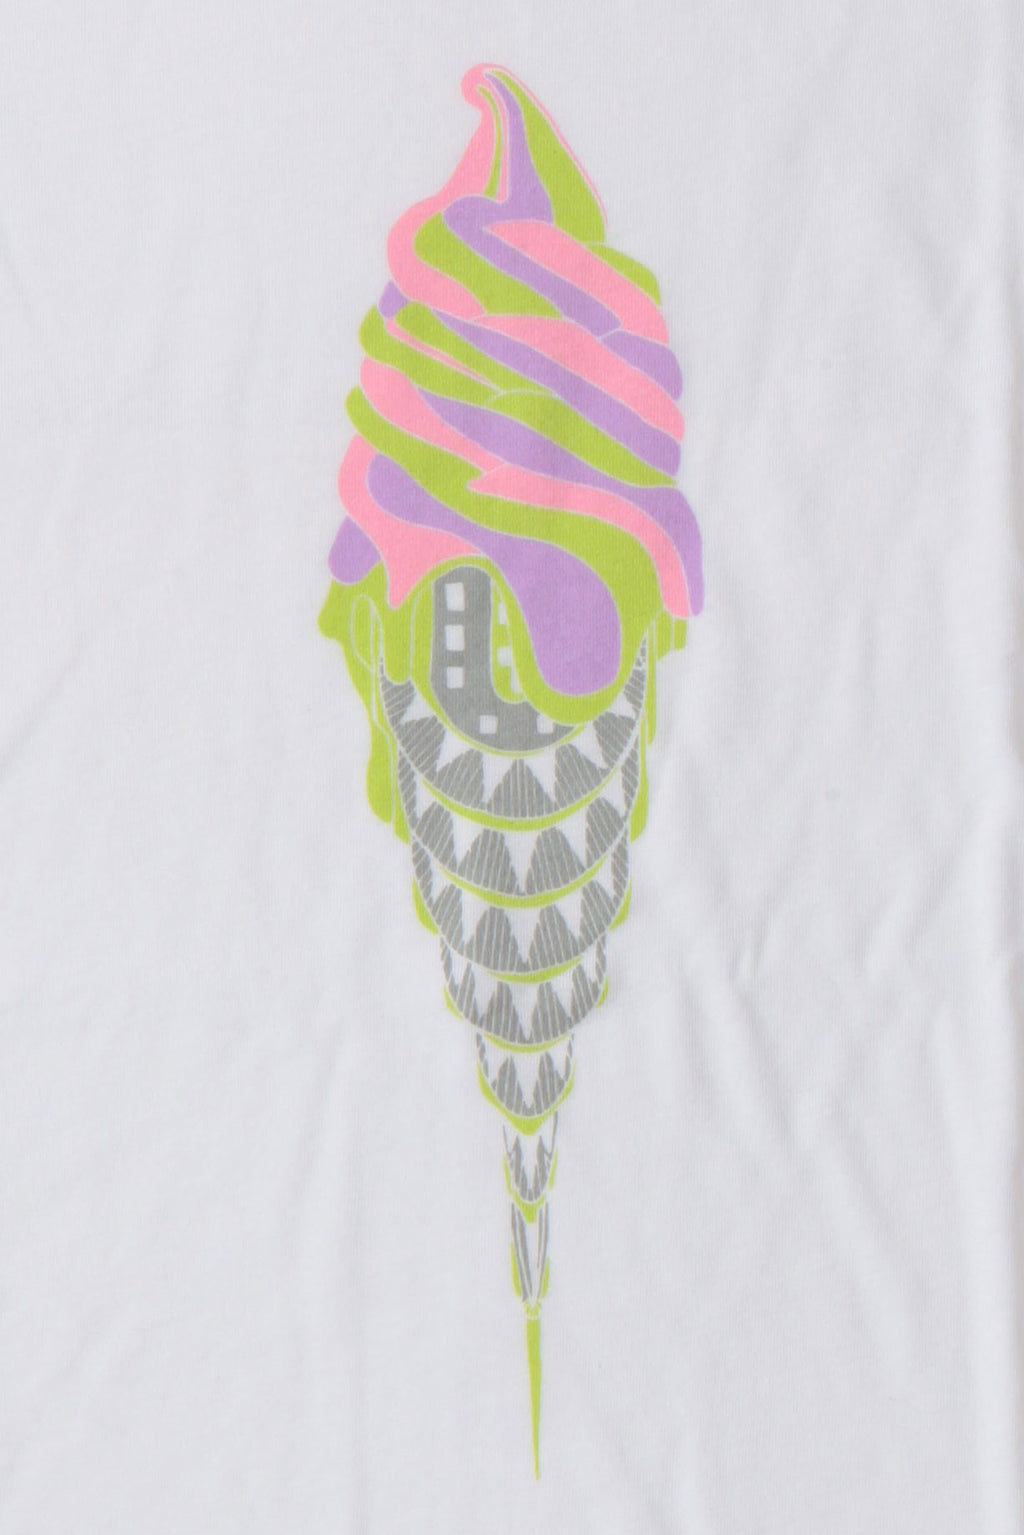 DETAIL OF WHITE TEE WITH ICE CREAM IN A CONE SHAPED LIKE THE CHRYSLER BUILDING.